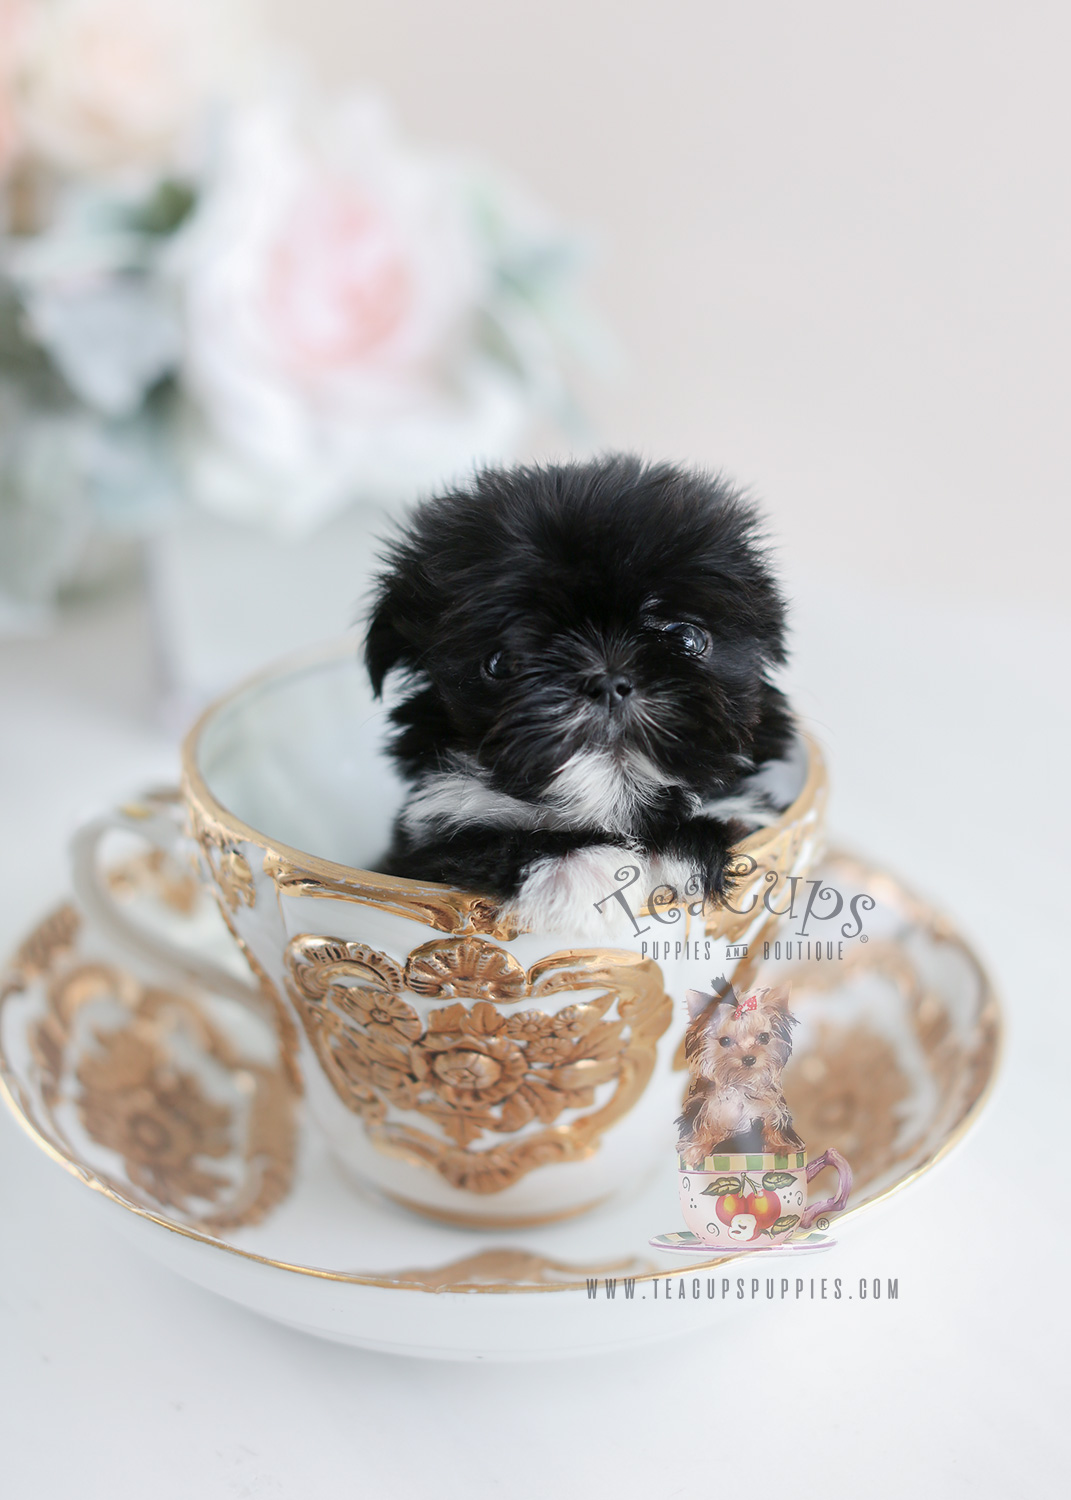 Tiny Imperial Shih Tzu Puppy For Sale #015